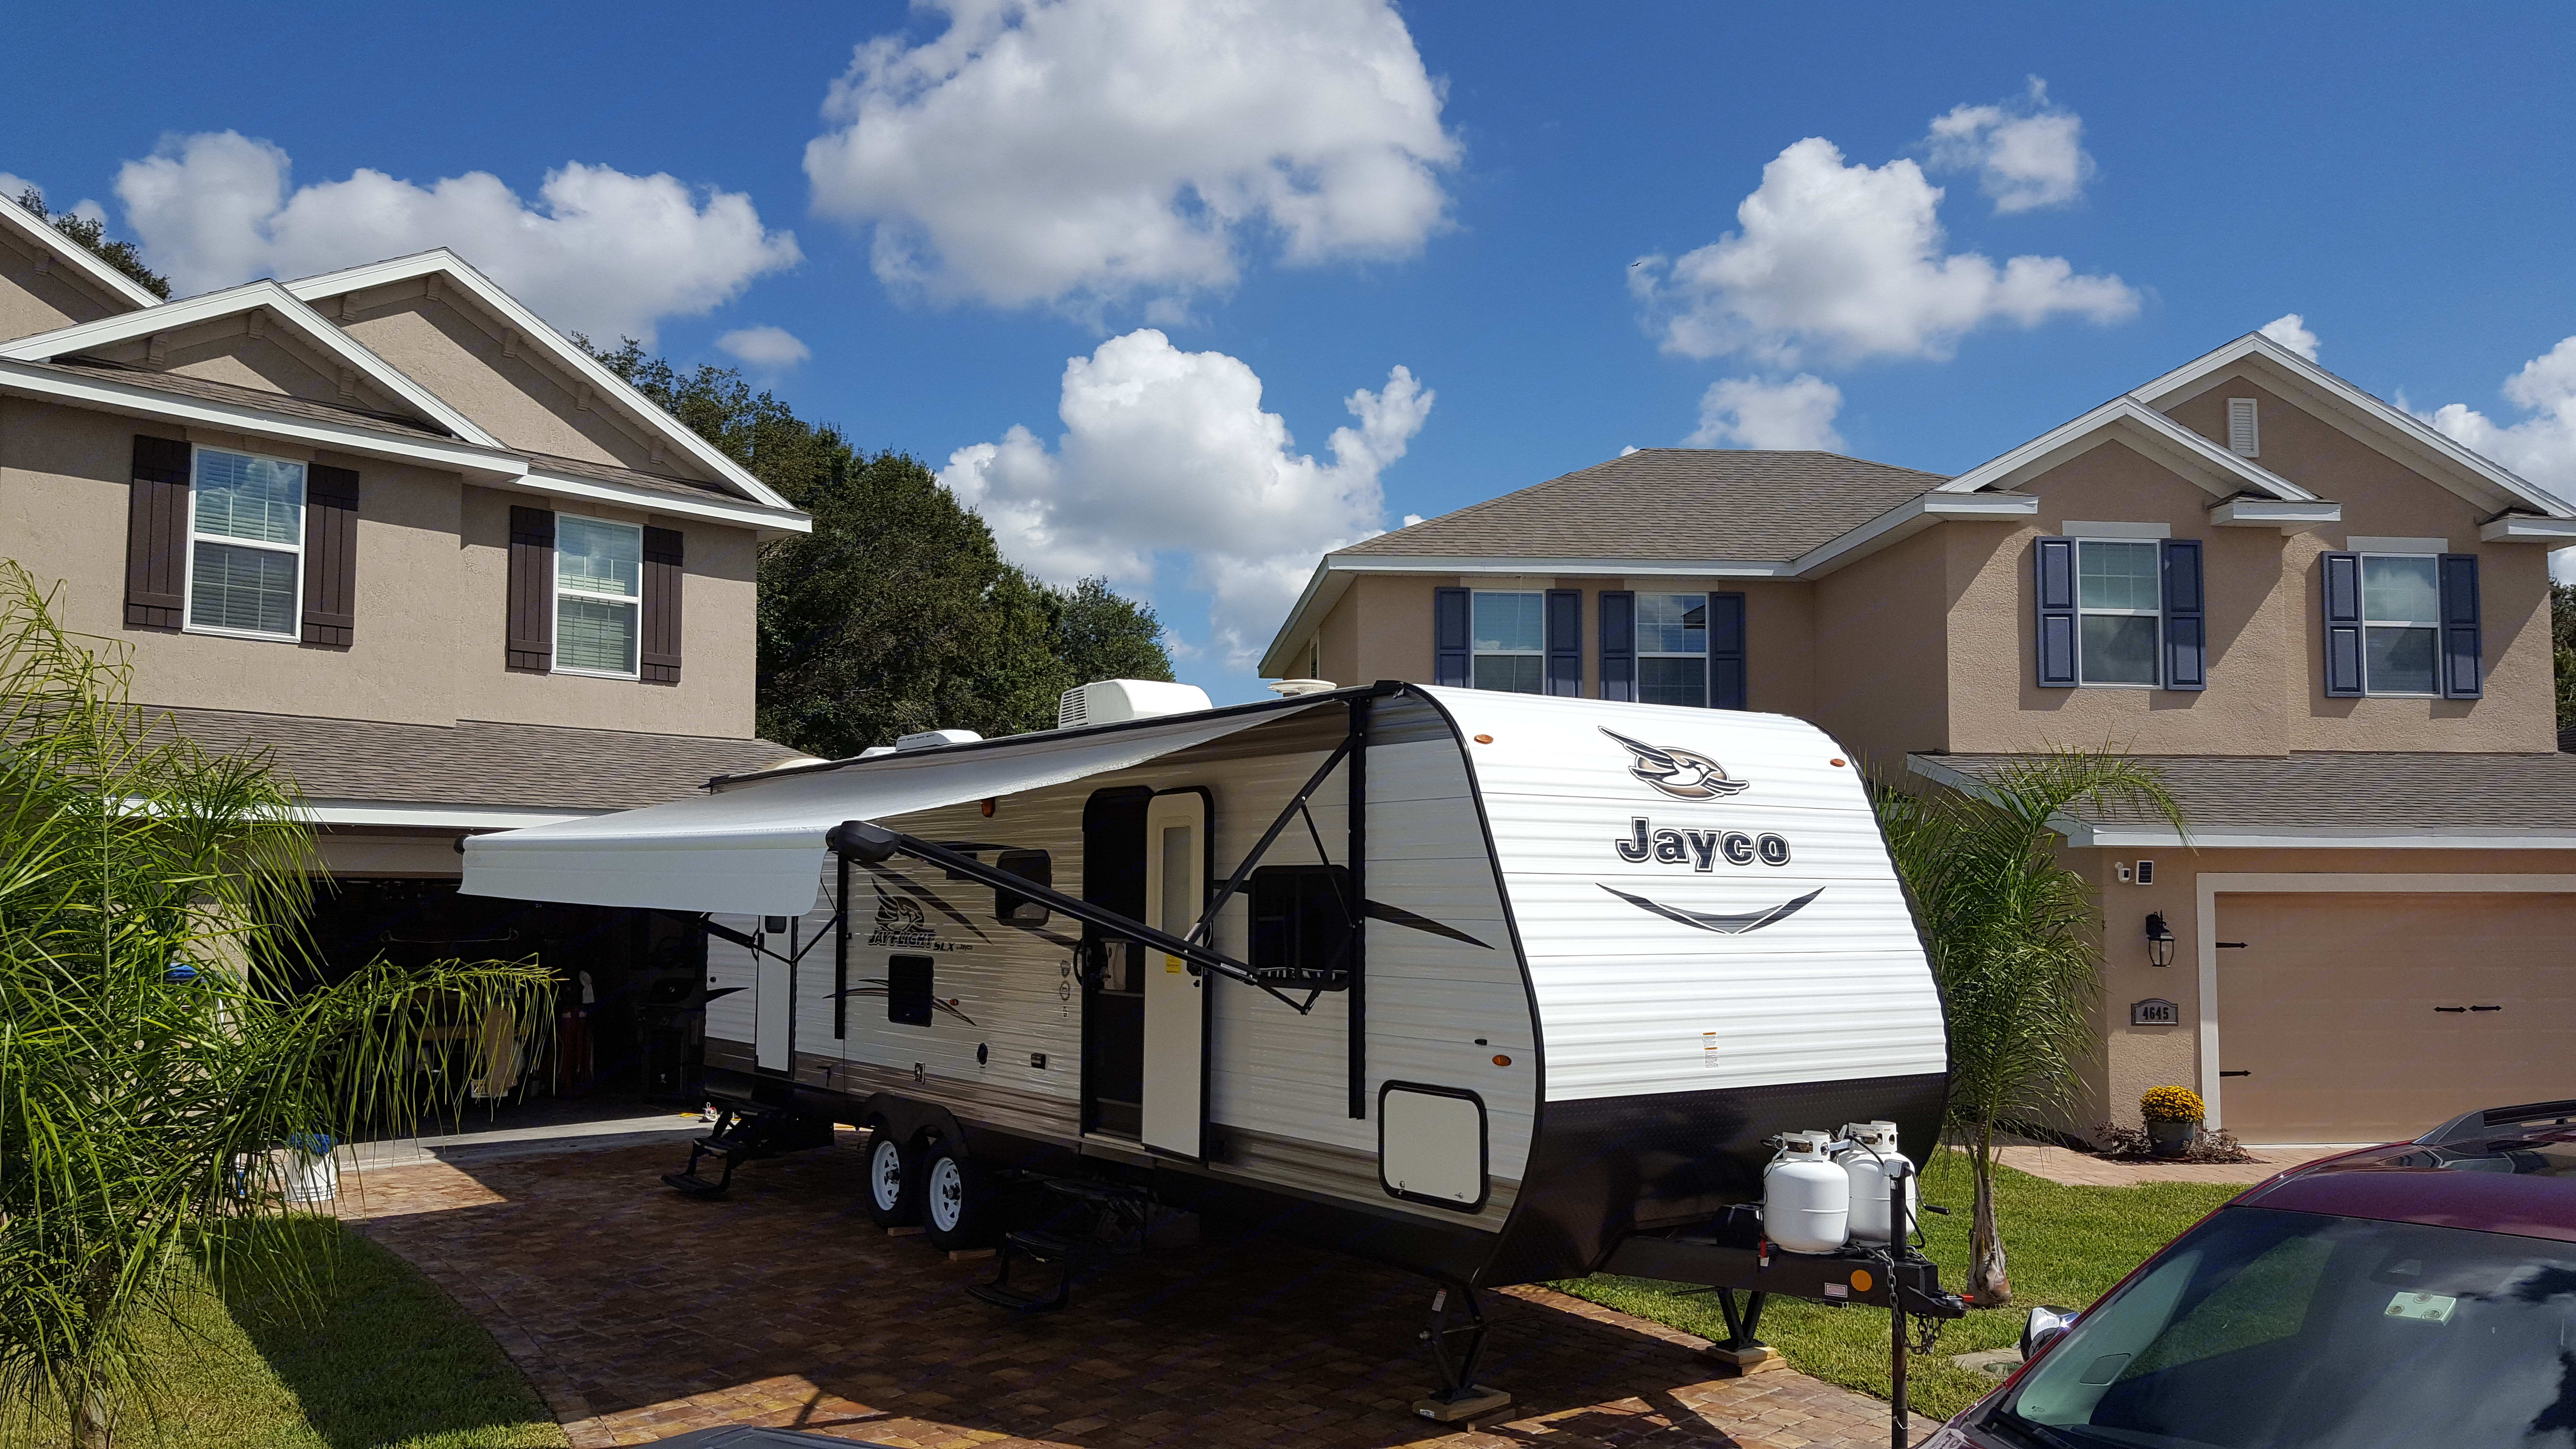 Easy 10 minute set up. Jayco Jay Flight SLX 287 BHSW 2017